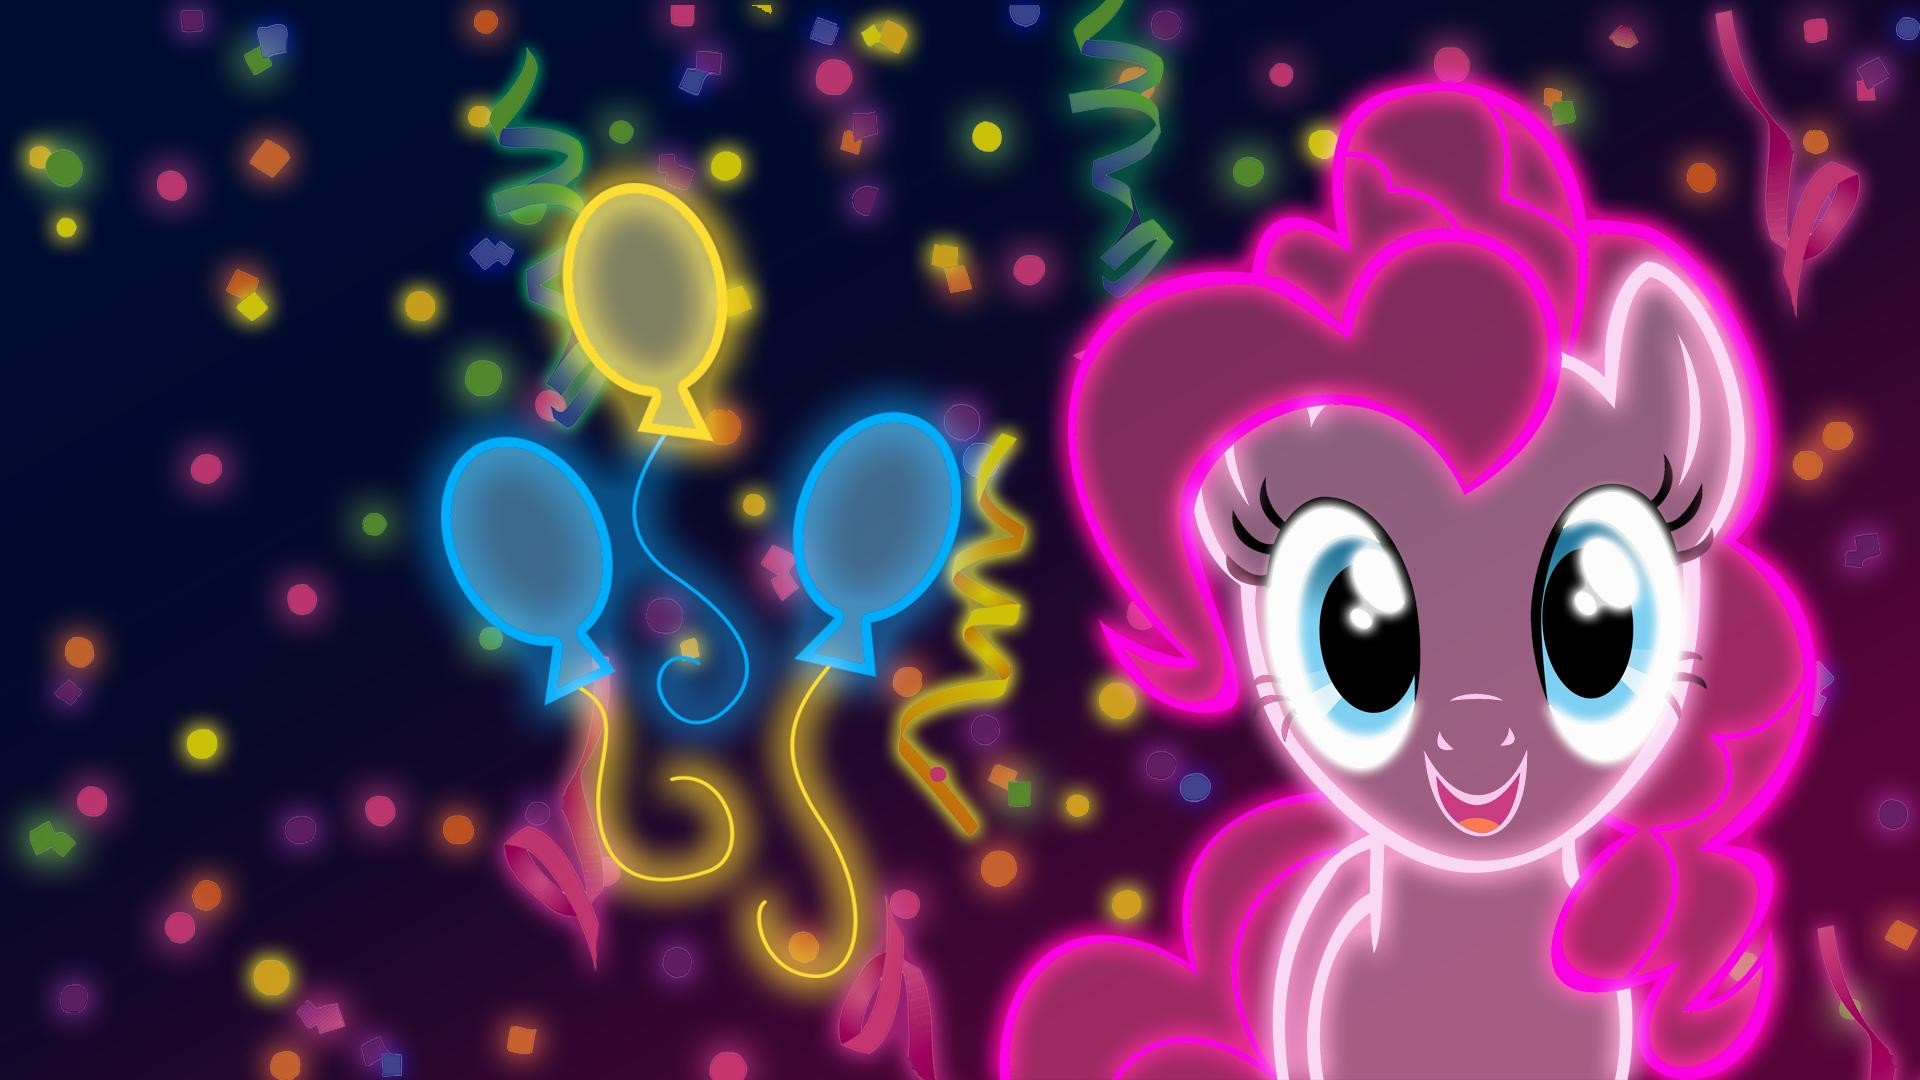 1920x1080 Neon-pinkie-pie-wallpaper-HD-MLP